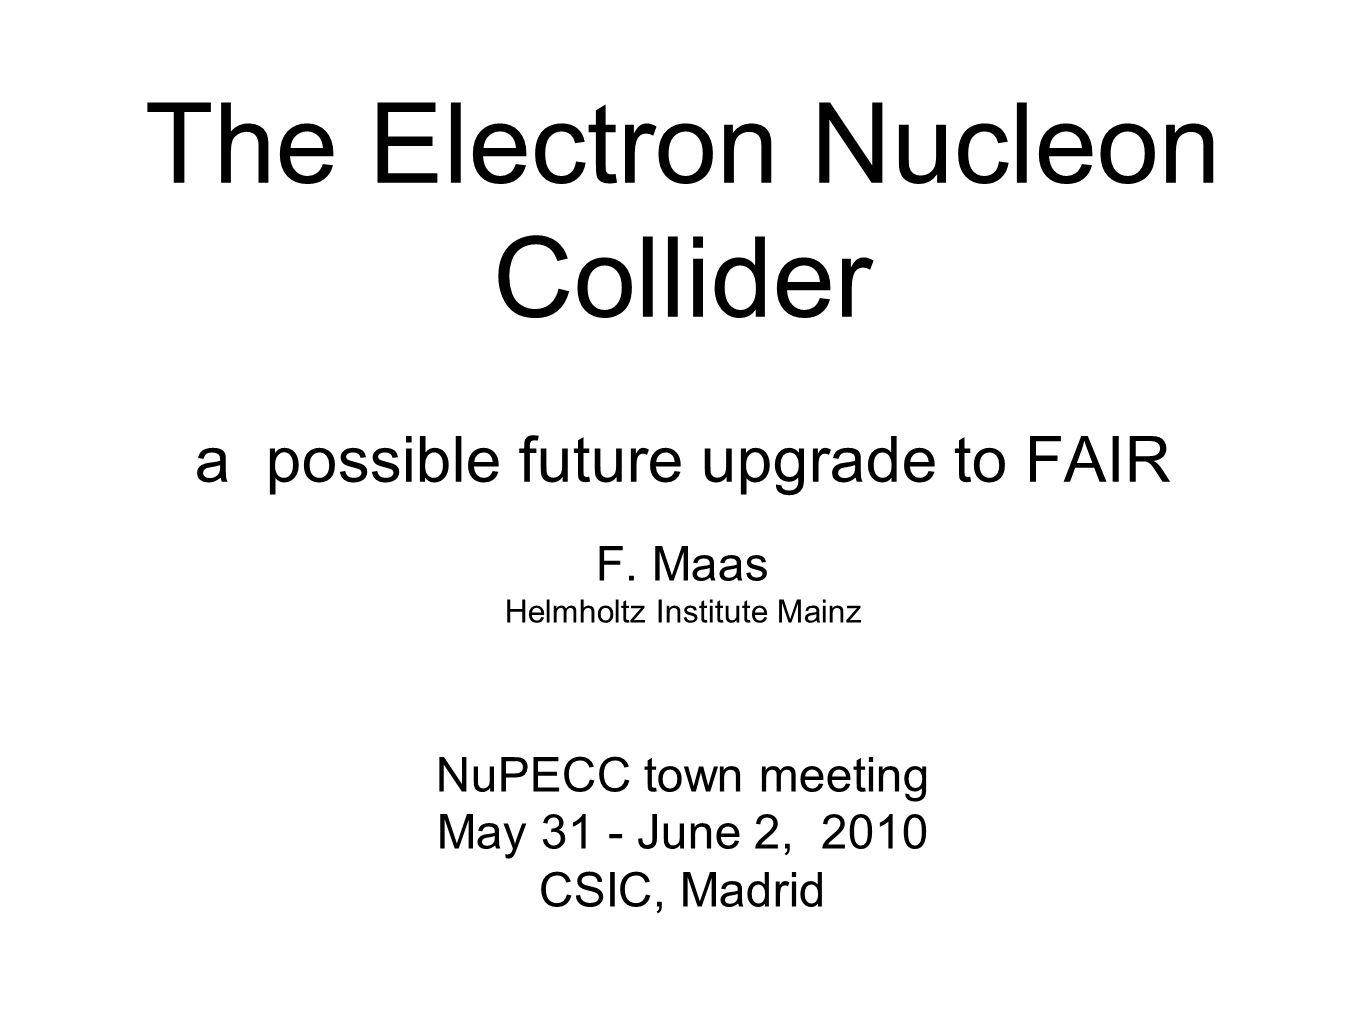 The Electron Nucleon Collider a possible future upgrade to FAIR F.